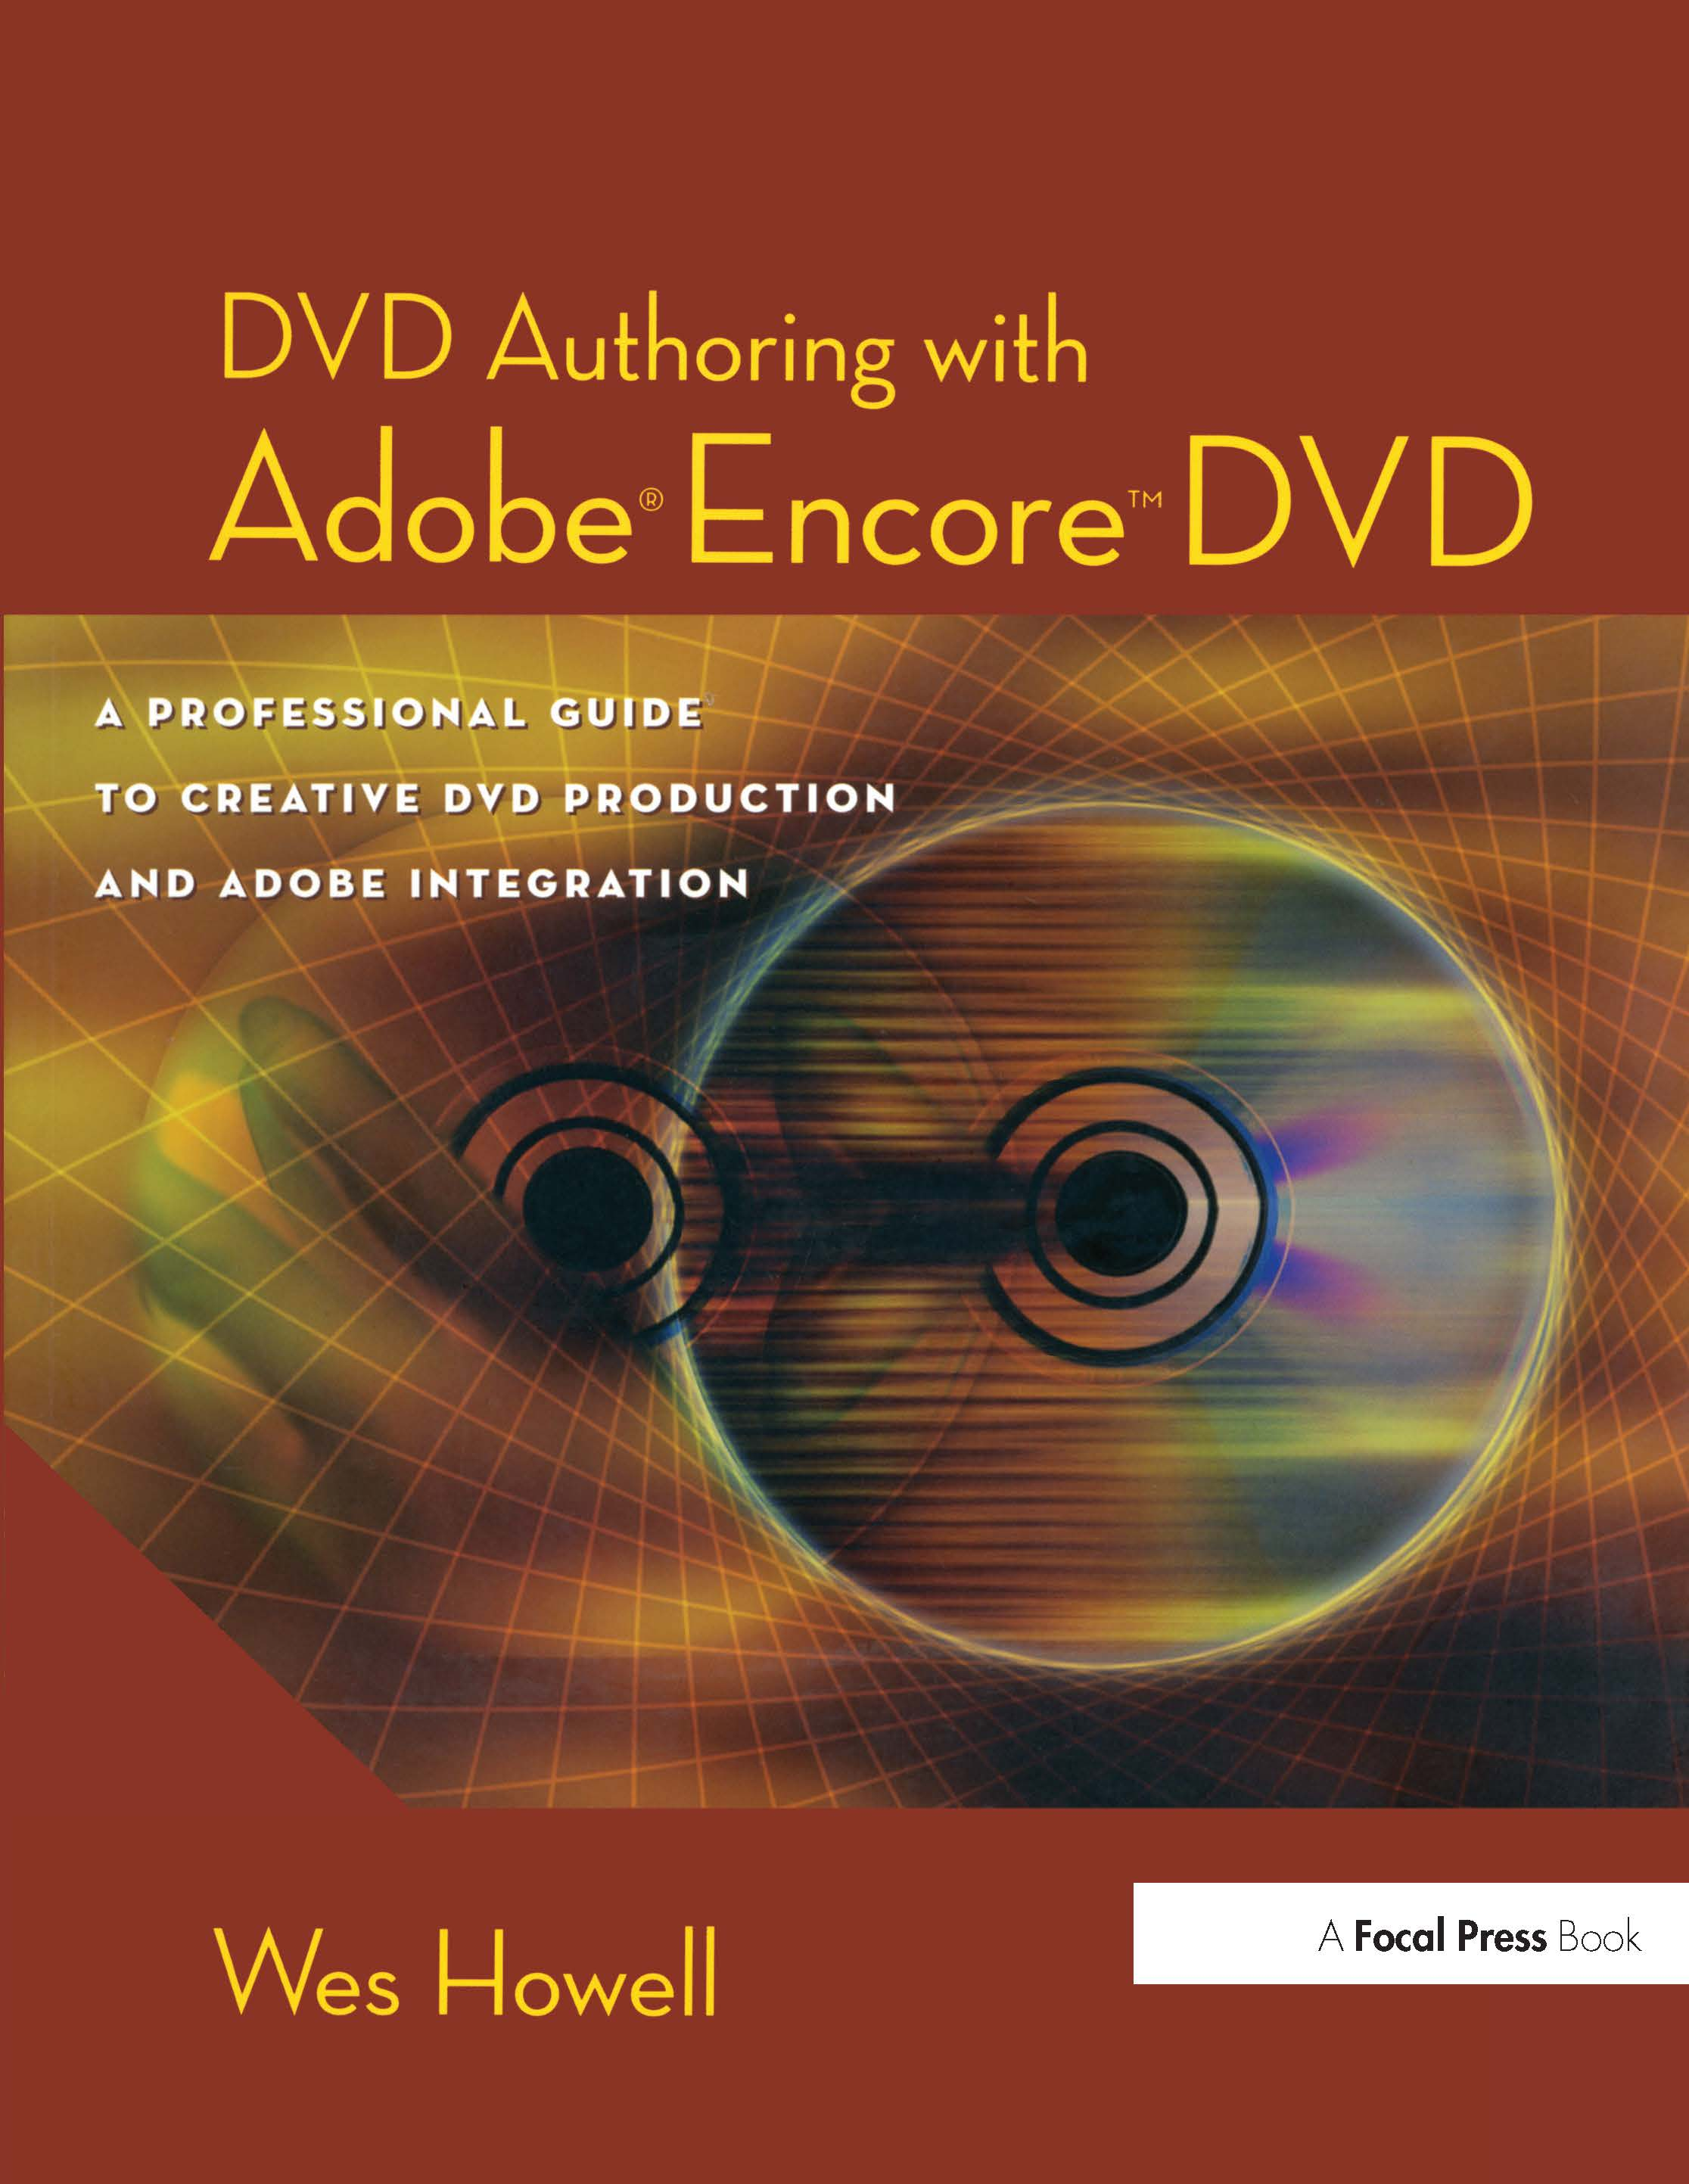 DVD Authoring with Adobe Encore DVD